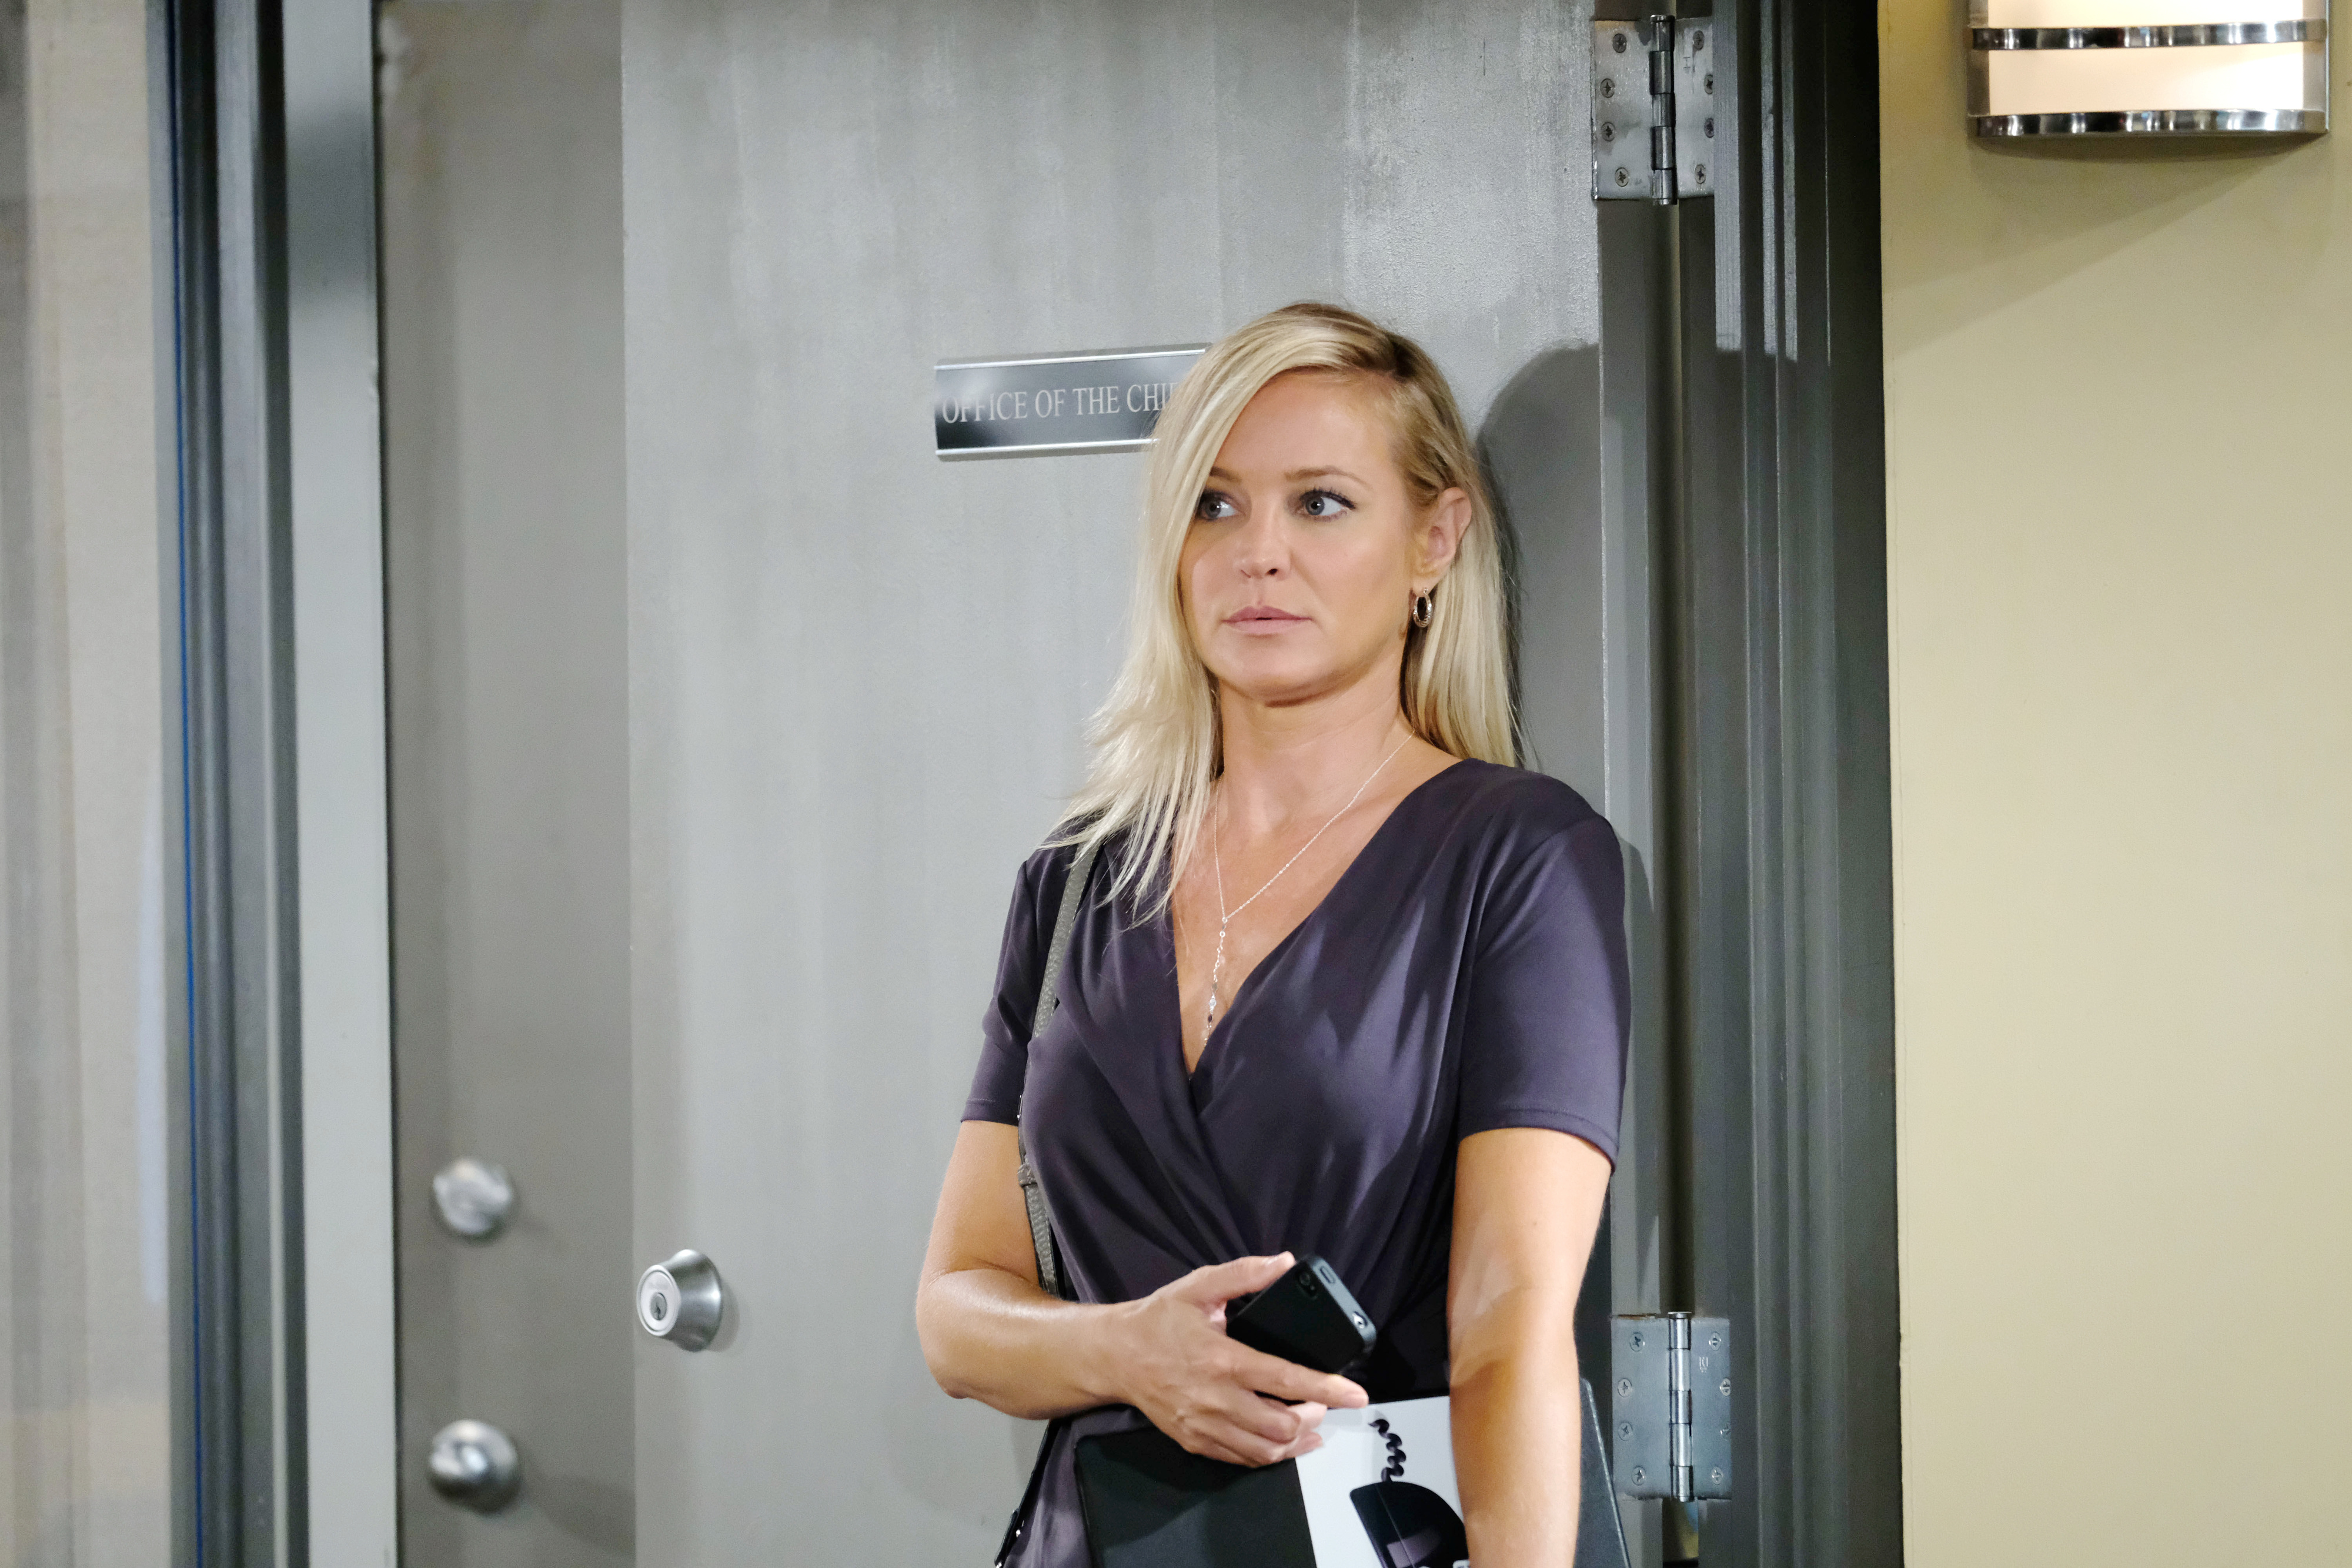 The Young and the Restless Spoiler: Nick and Sharon set a trap for Alice